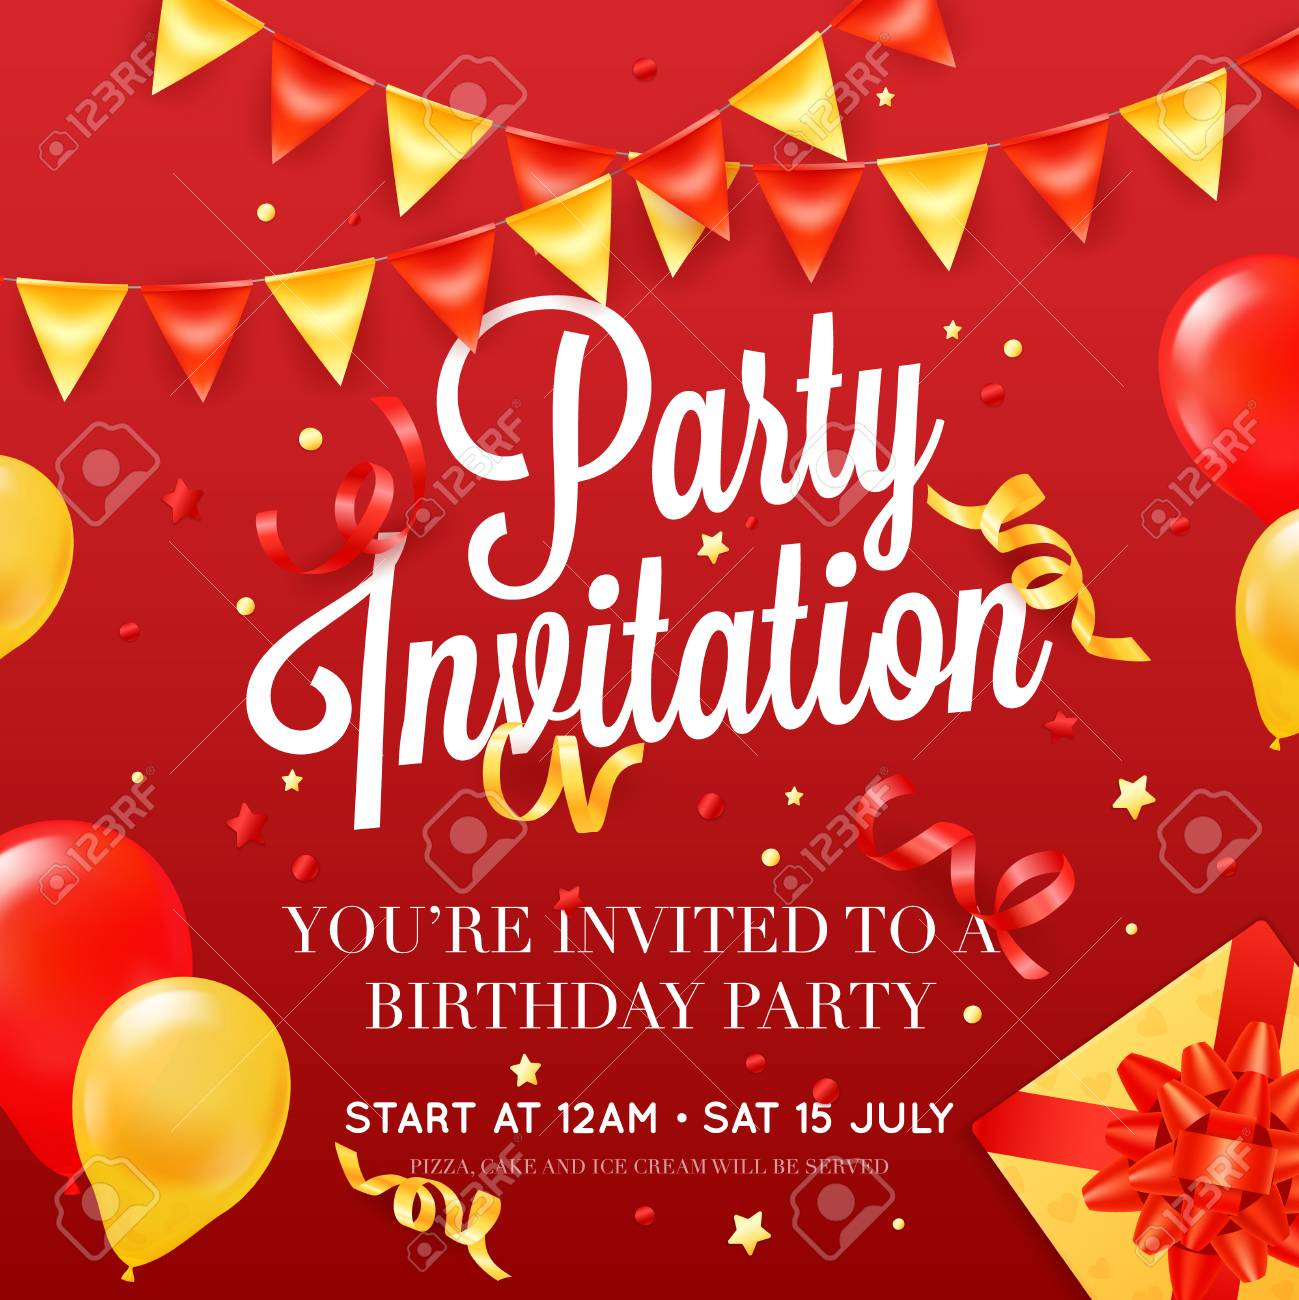 birthday party invitation card poster template with ceiling balloon